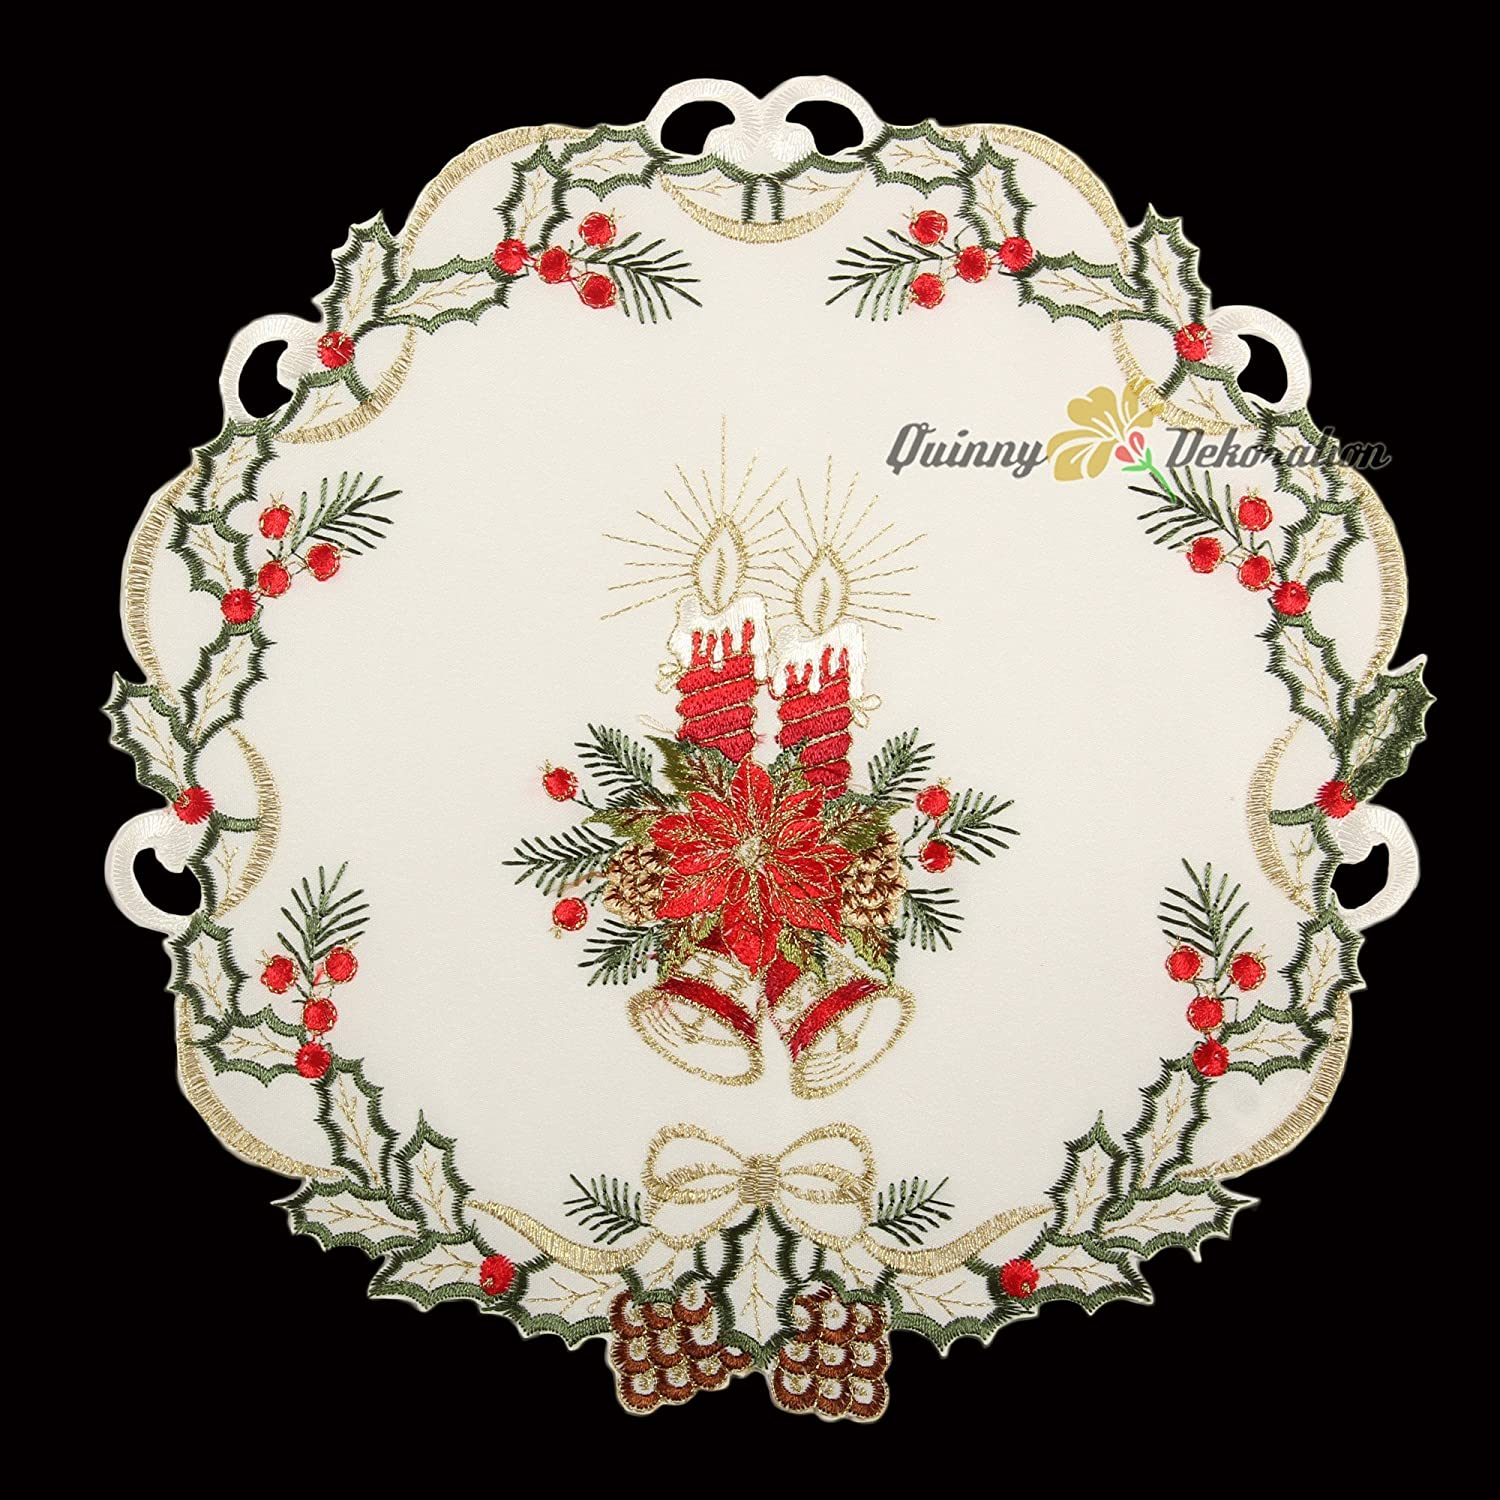 Christmas Candles Bells Poinsettia Flowers 9-Inch-by-15-Inch 22 x 37 cm Polyester White//Ecru Quinnyshop Embroidred Placemats